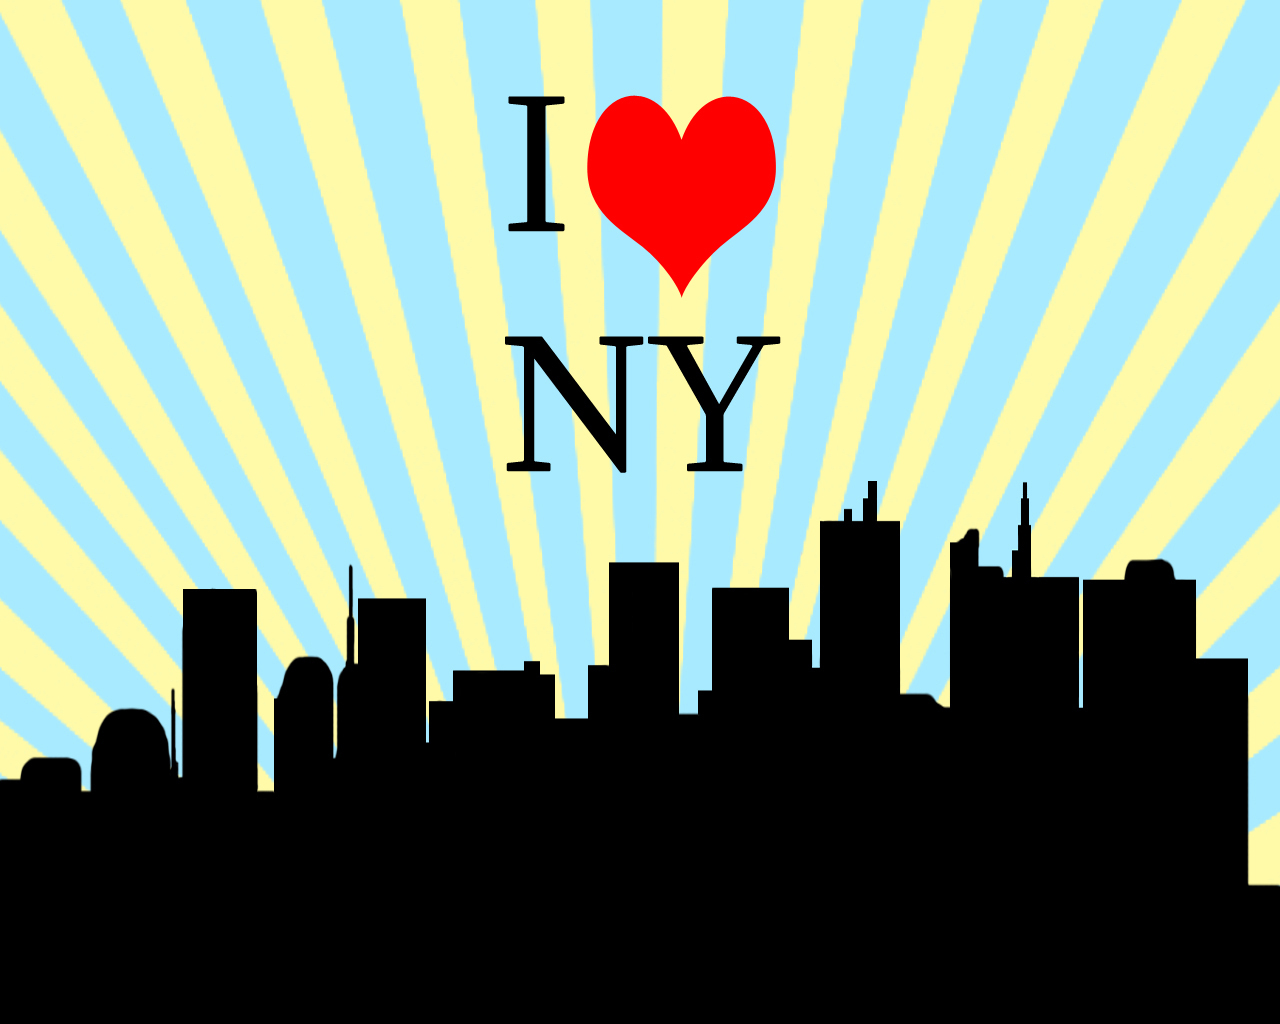 I Love You New York Quotes : LOVE NEW YORK Quotes Like Success